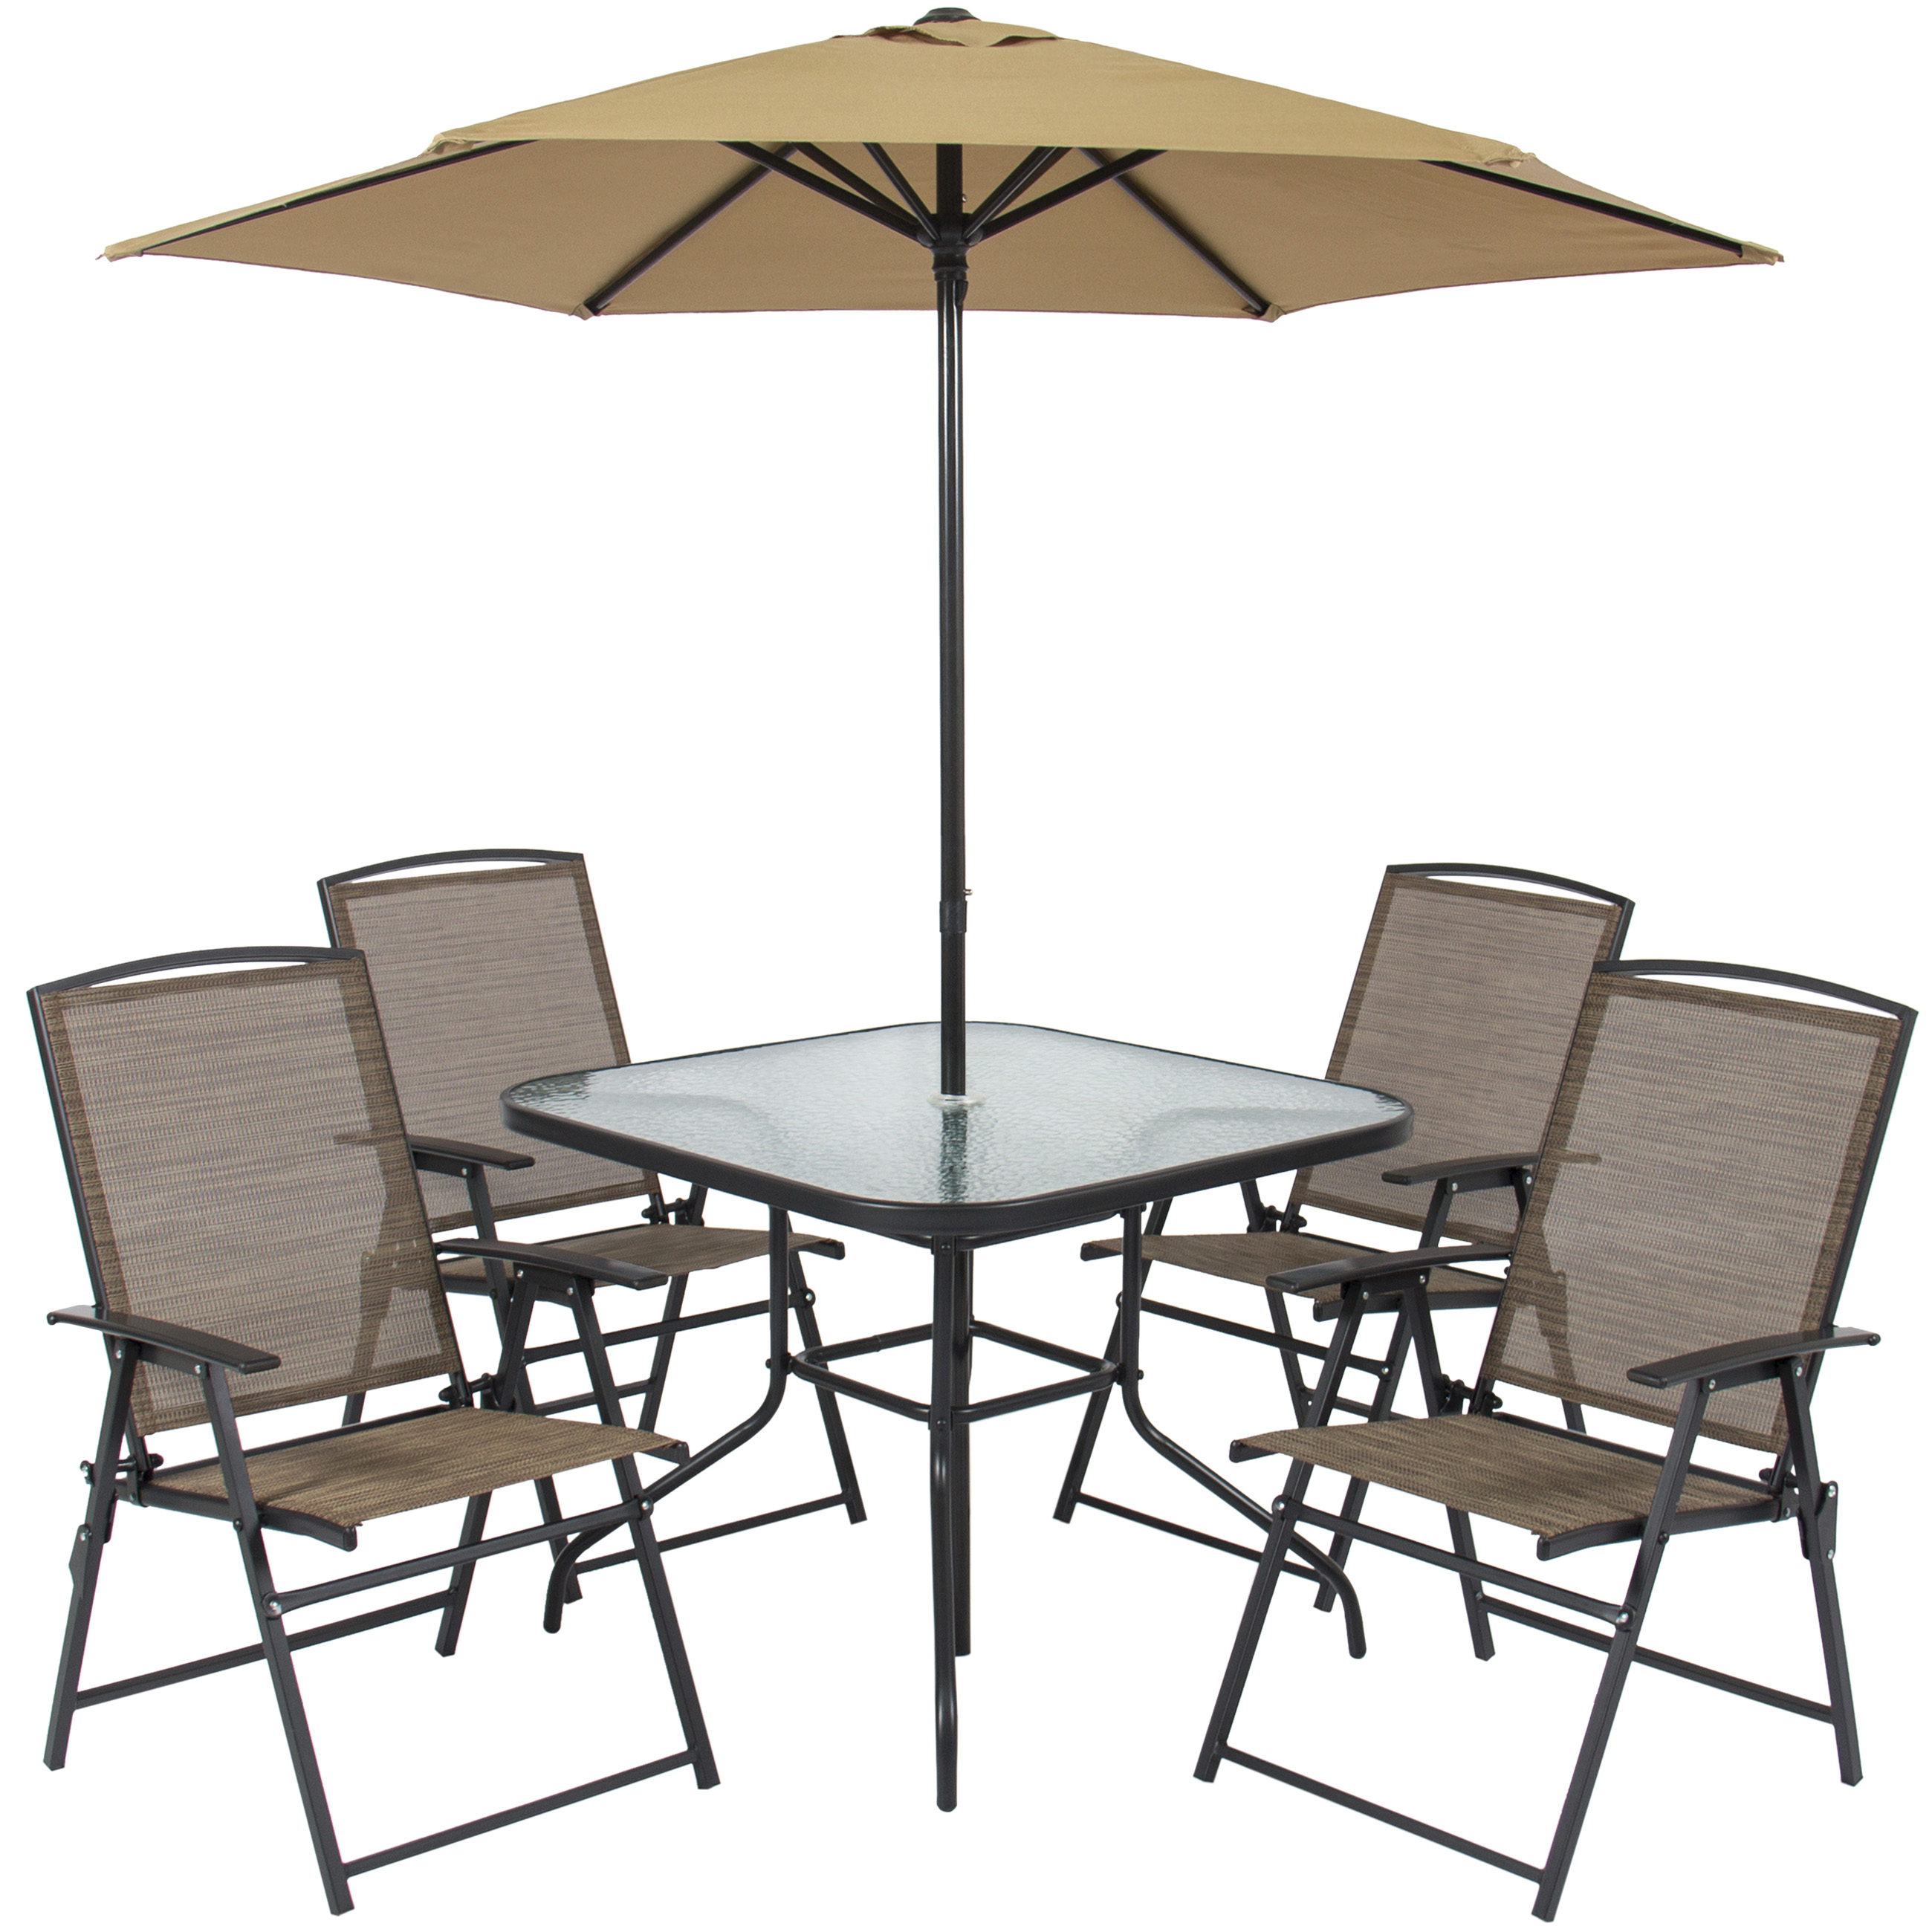 Patio Furniture Umbrella best choice products 6pc outdoor folding patio dining set w/ table